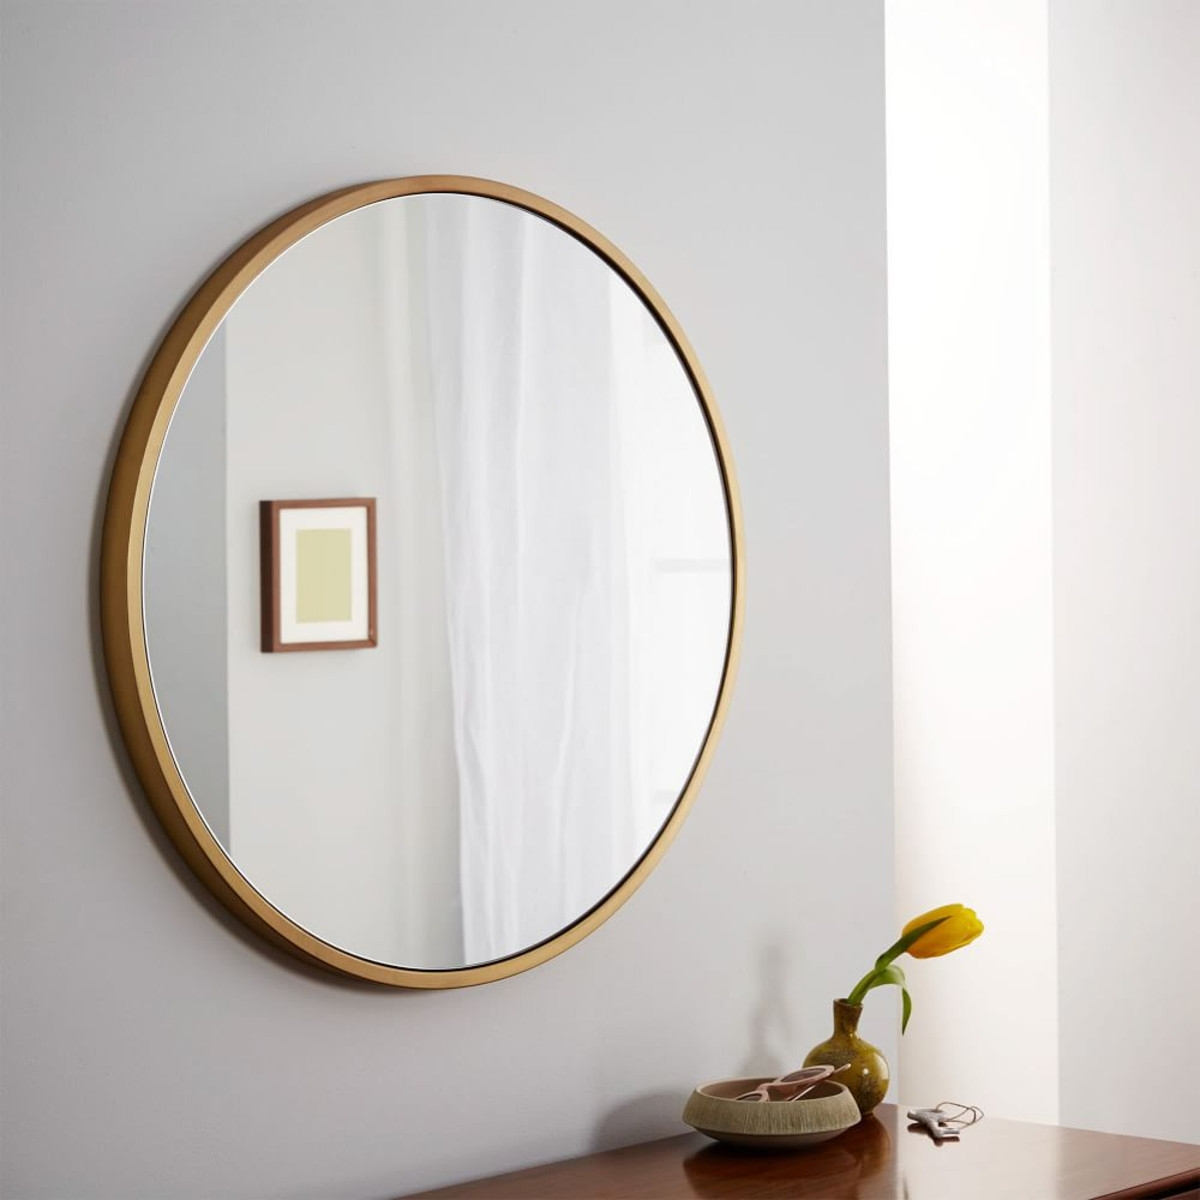 Metal Framed Round Wall Mirror Antique Brass Main Entry Inside Antique Round Mirrors (View 13 of 15)